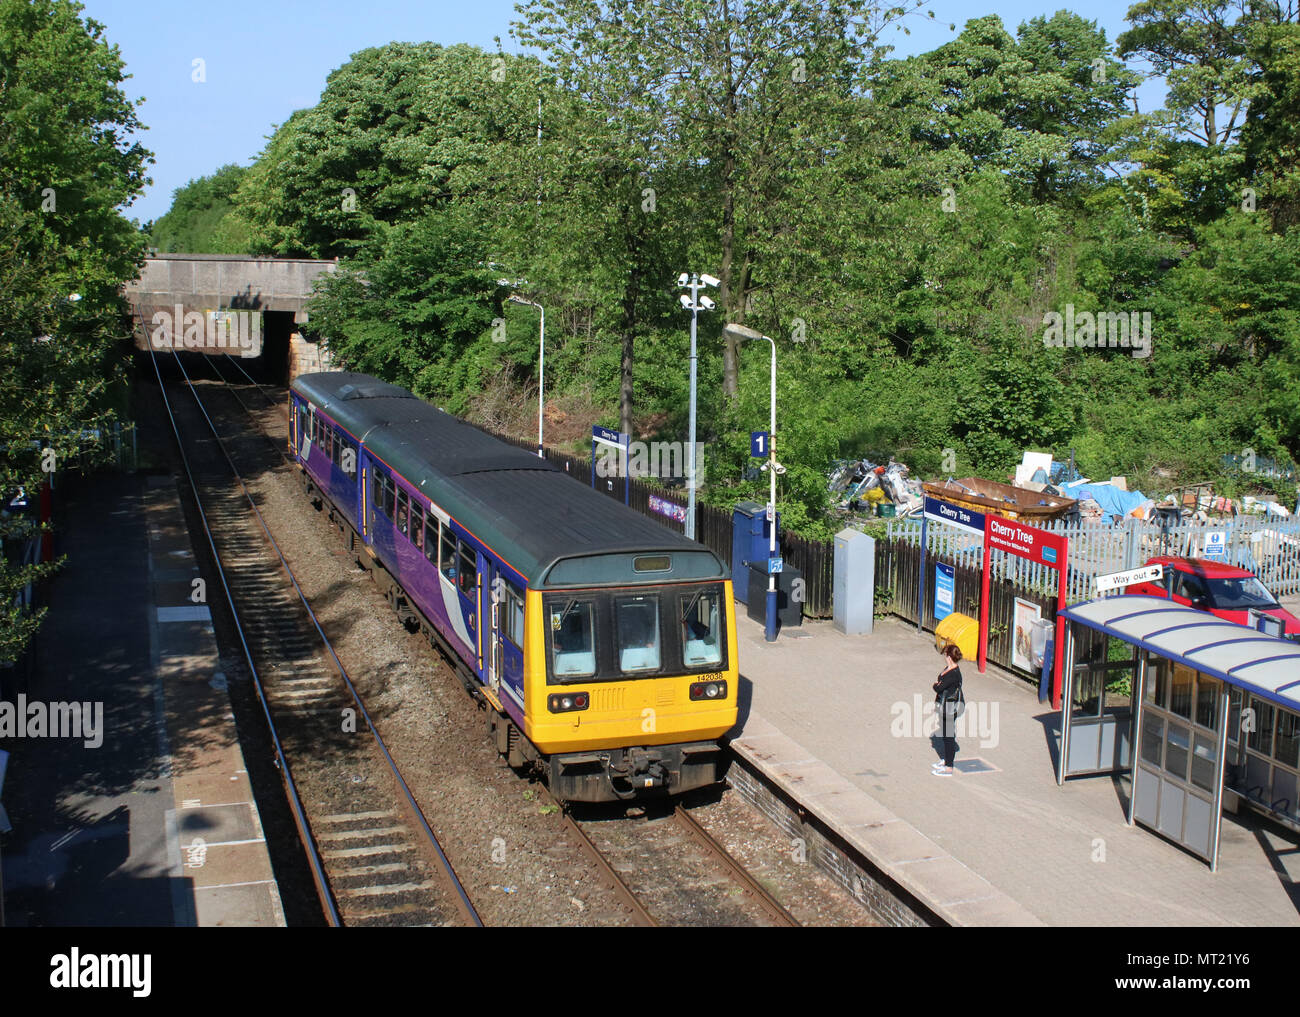 Class 142 Pacer two car dmu train in Northern livery arriving at Cherry Tree railway station, Lancashire, with a passenger waiting on the platform. - Stock Image